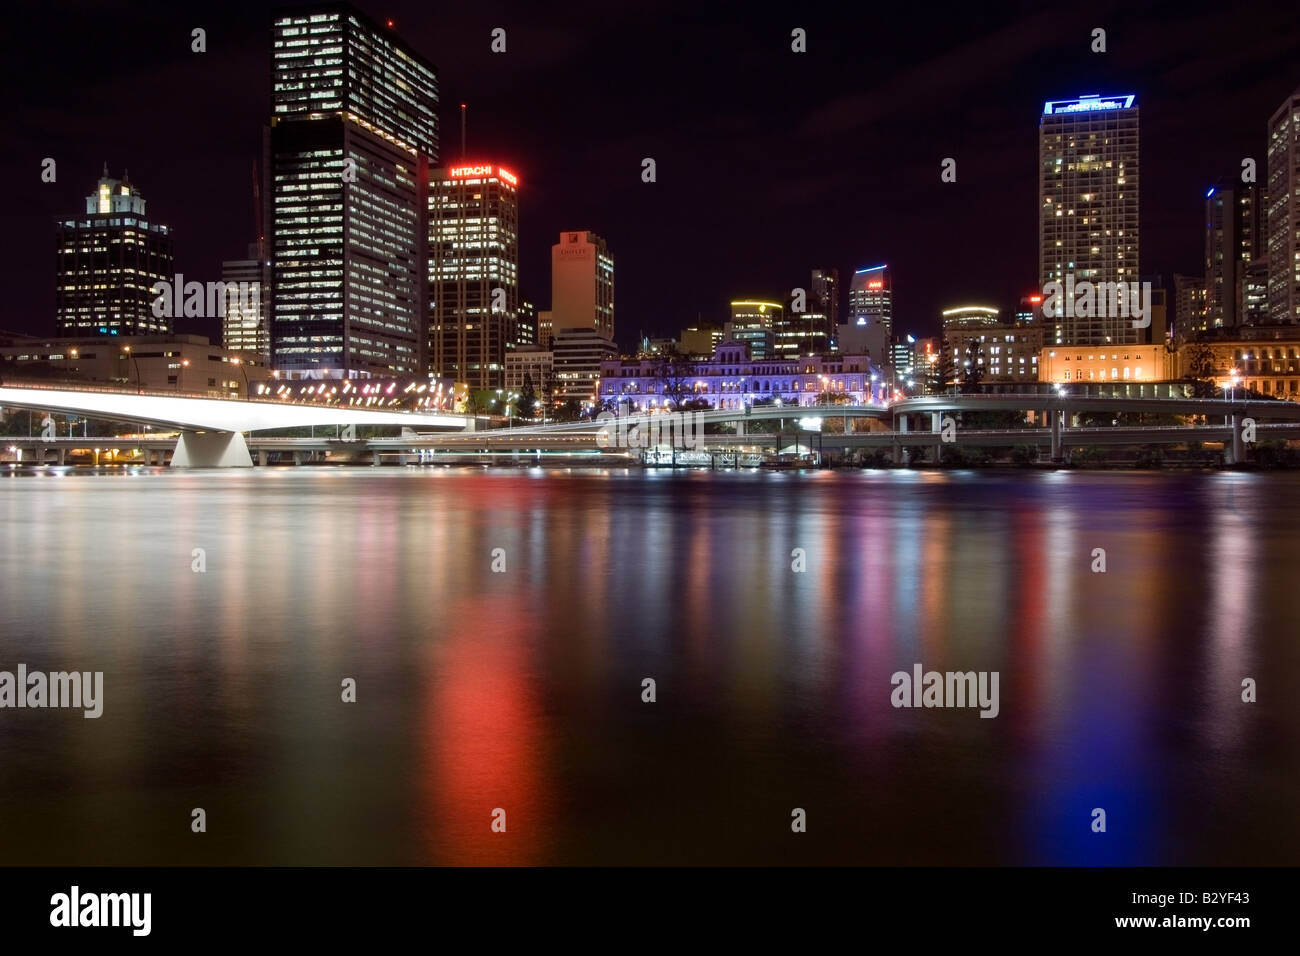 Rainbow of colours in the Brisbane River, Queensland, Australia - Stock Image